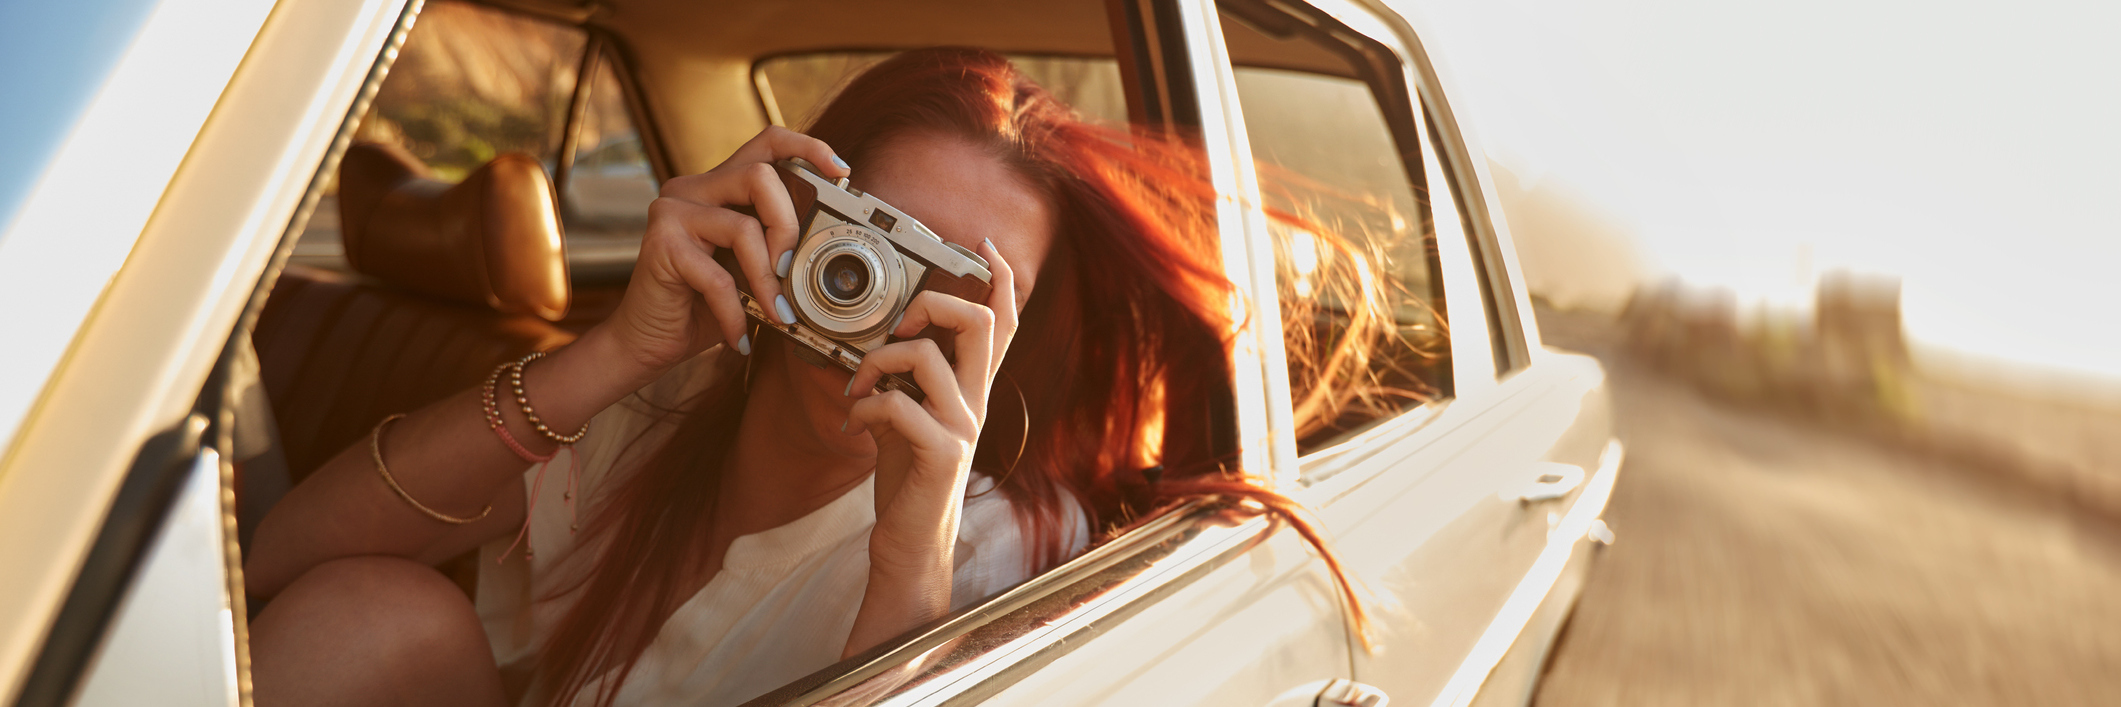 A woman taking a photo from the car.